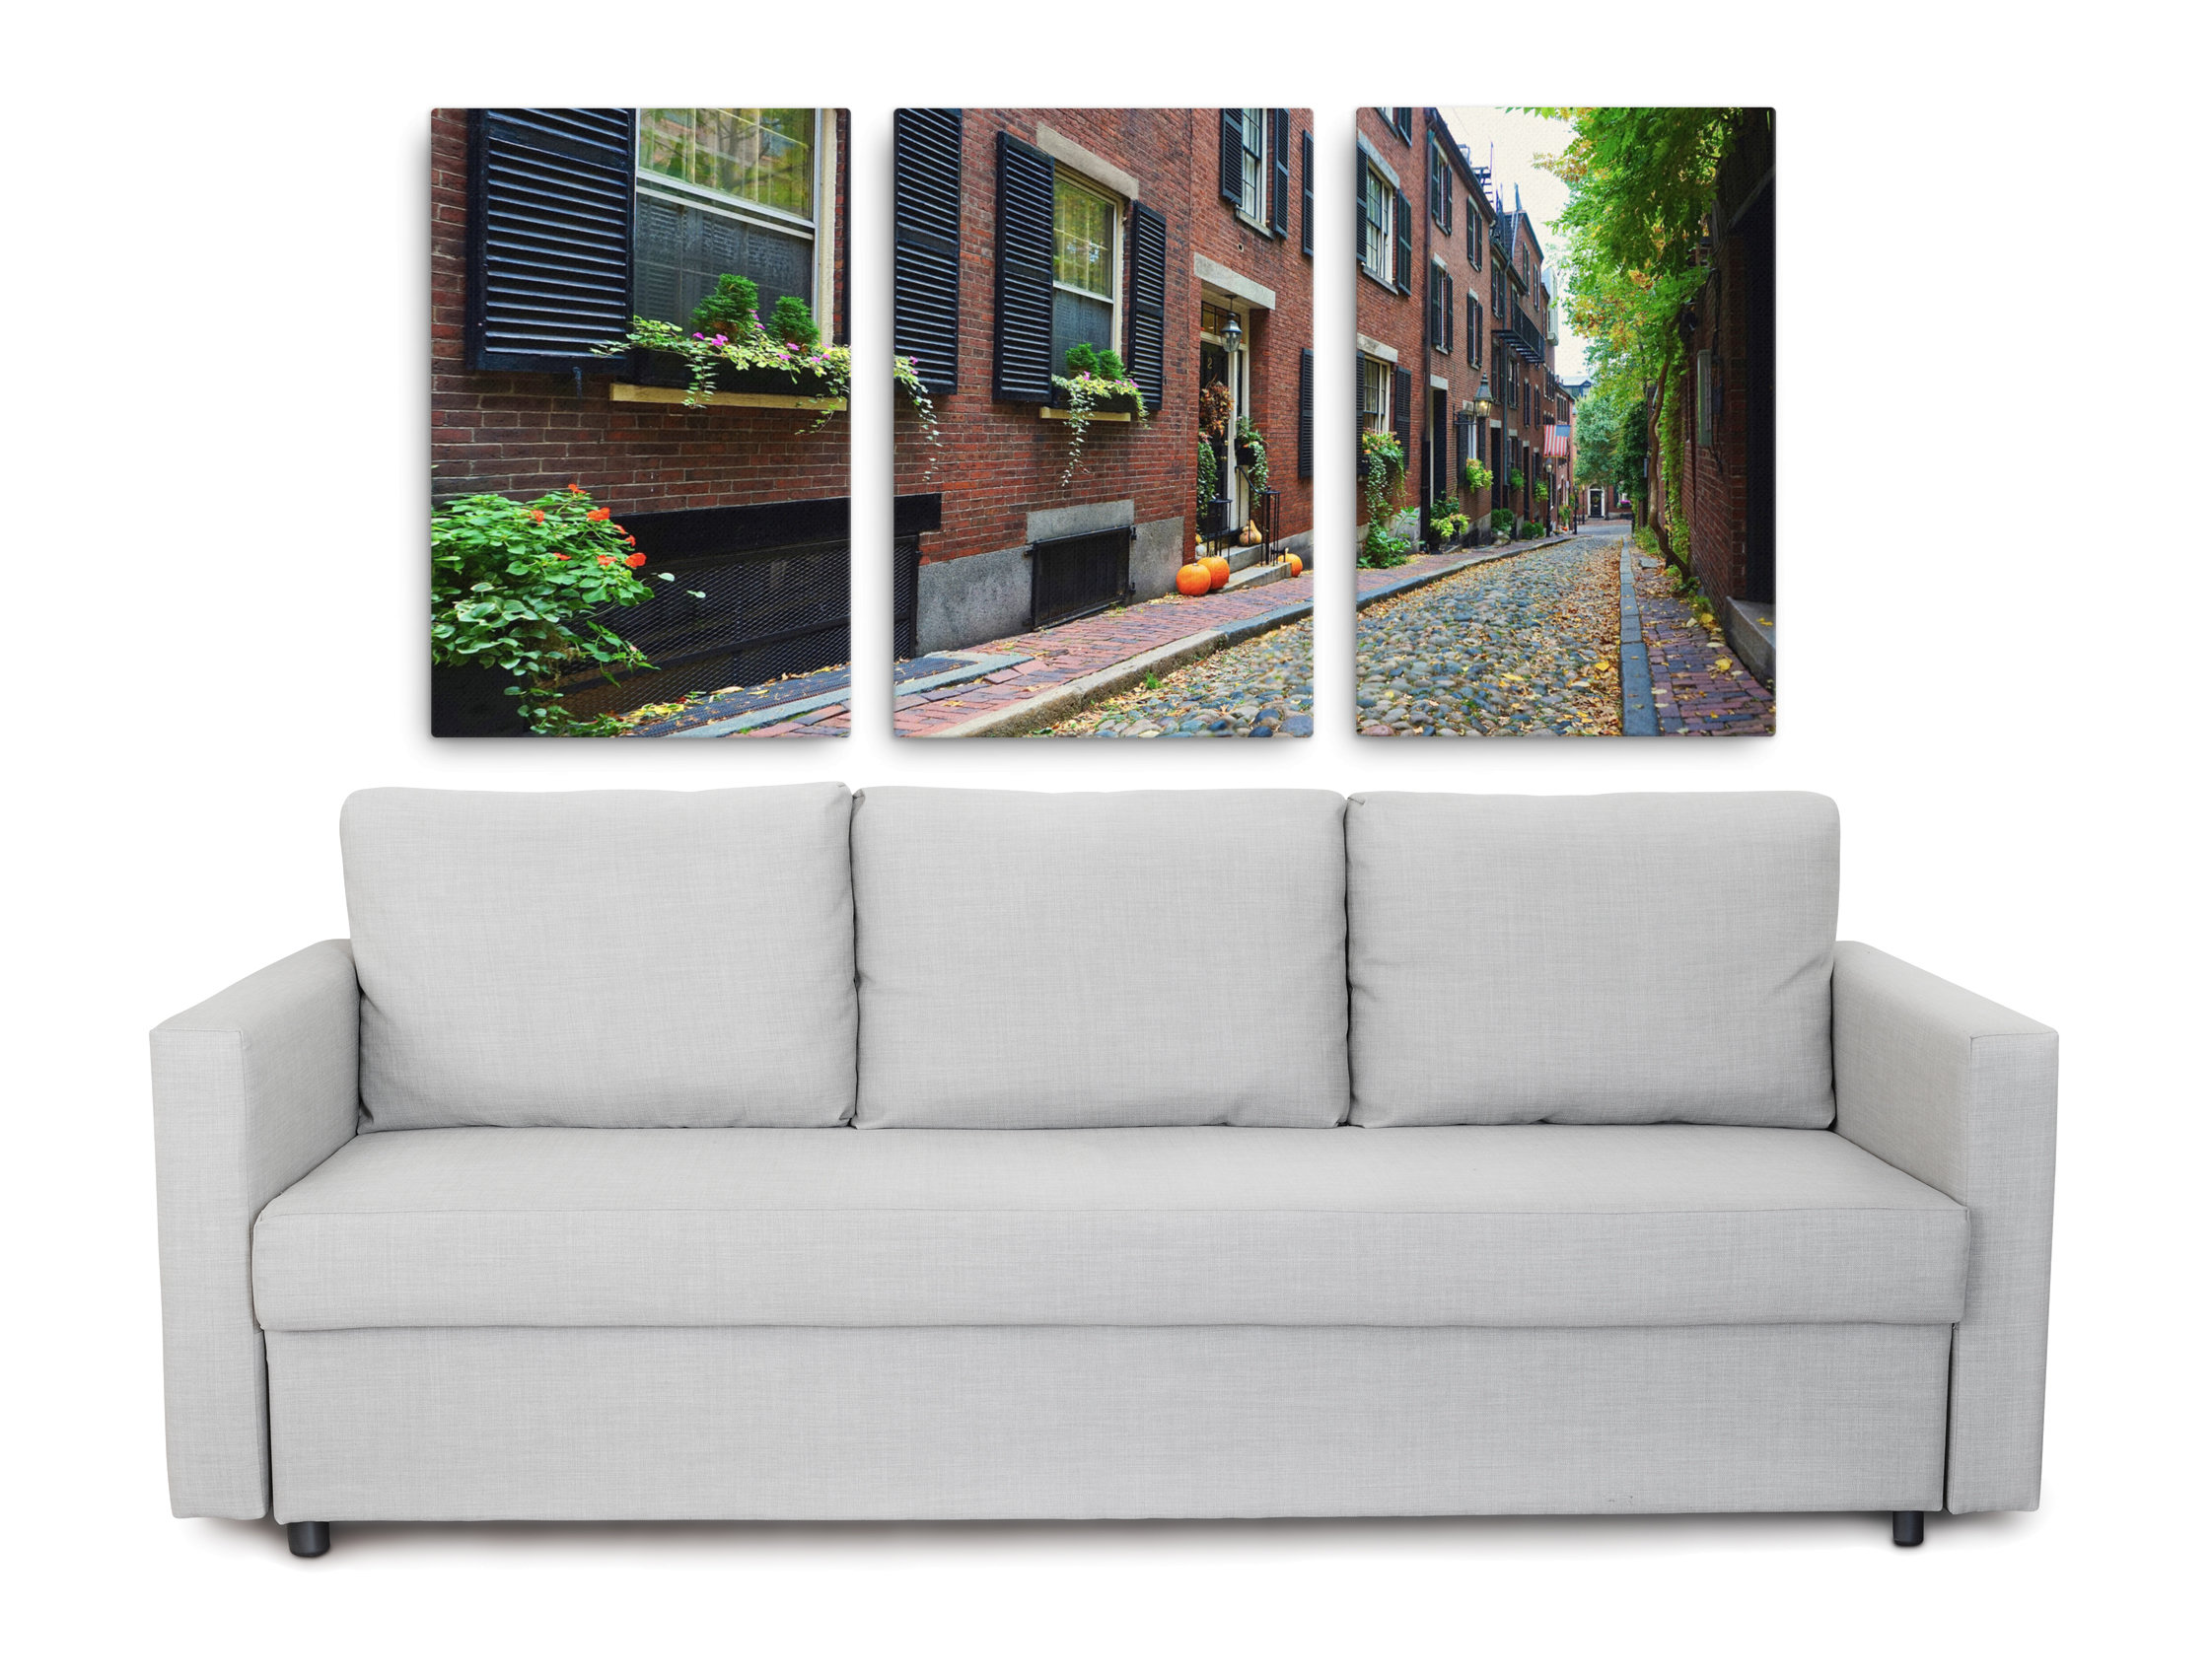 3 Piece wall art picture of Acorn Street on Beacon Hill in Boston